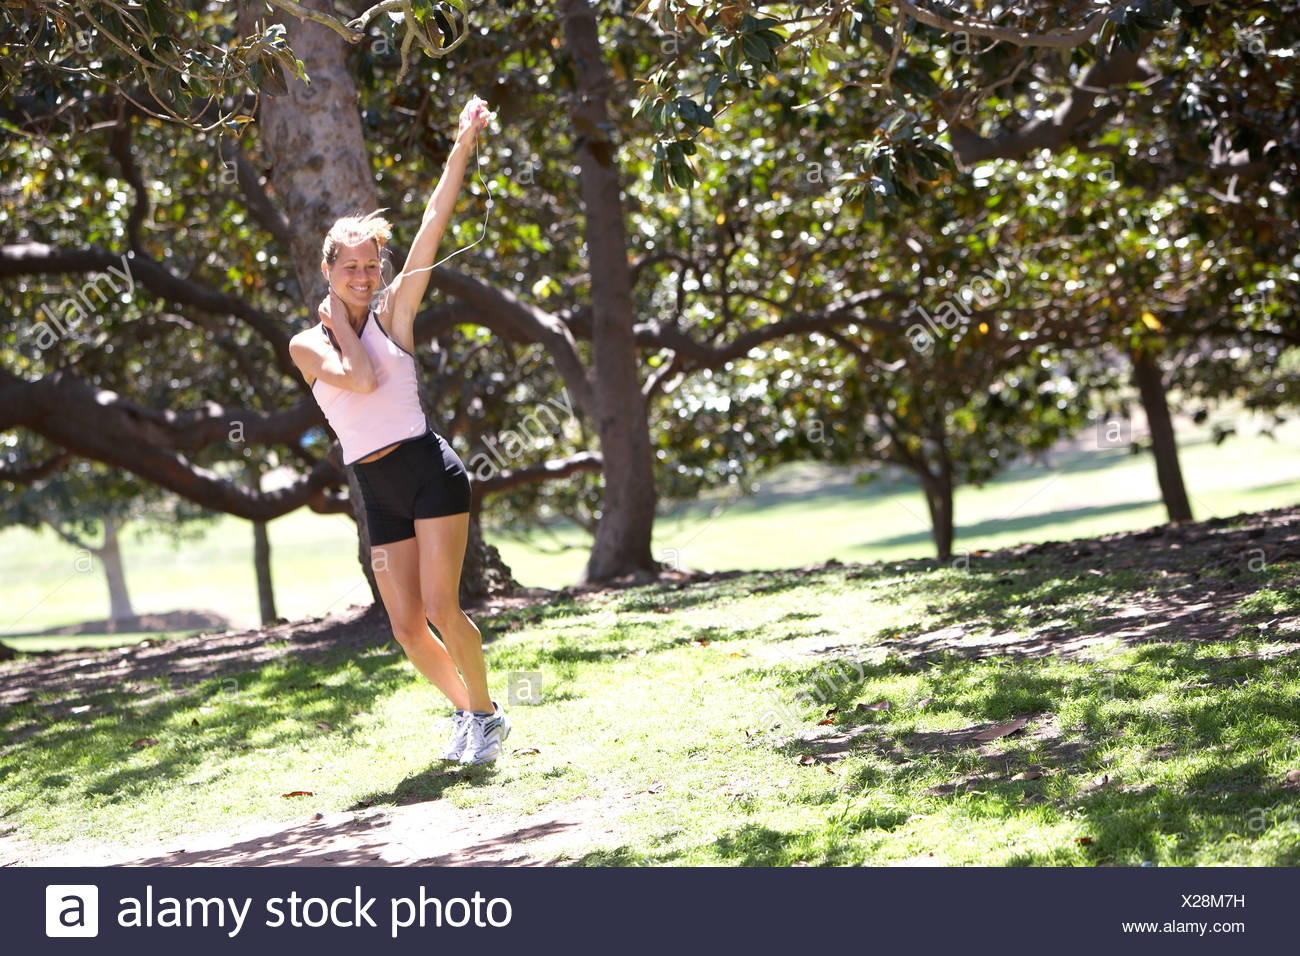 Woman exercising in park listening to MP3 player hand raised smiling trees in background tilt Stock Photo